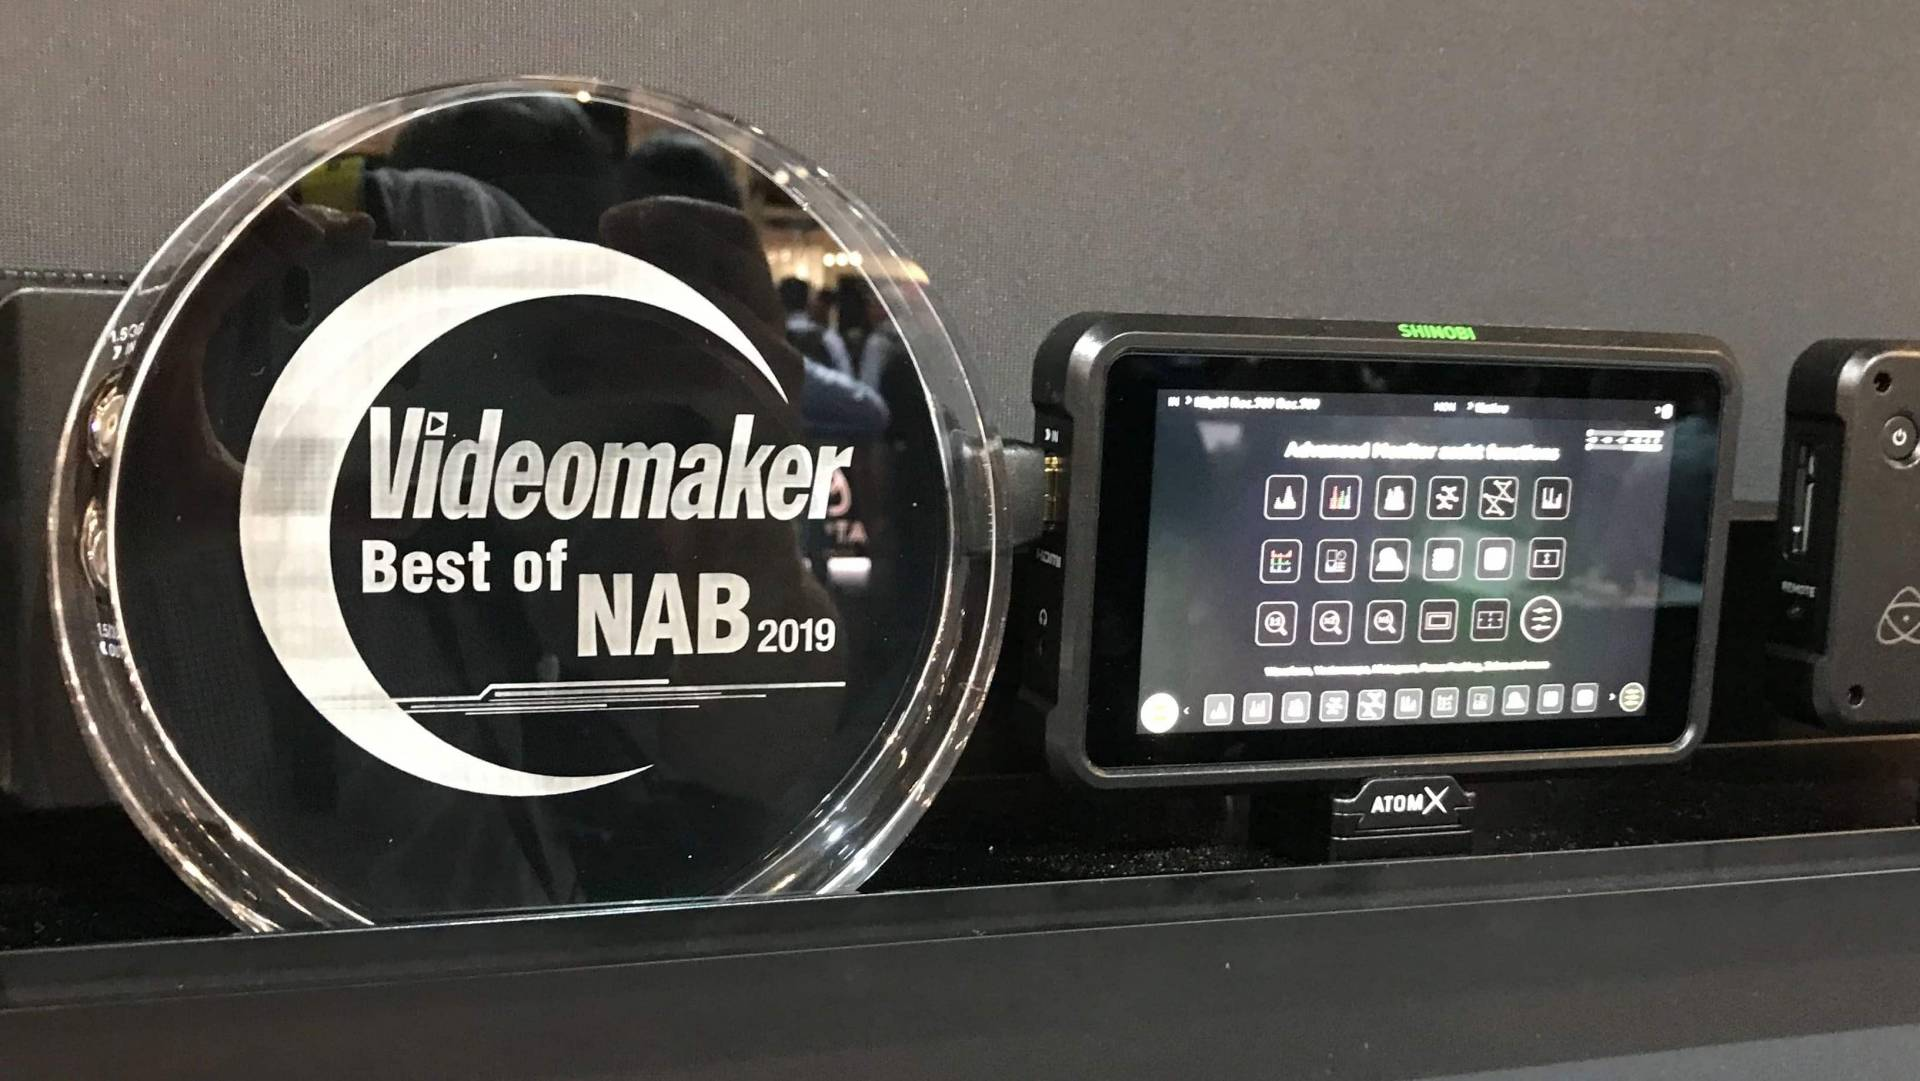 Atomos Shinobi with Best of NAB award